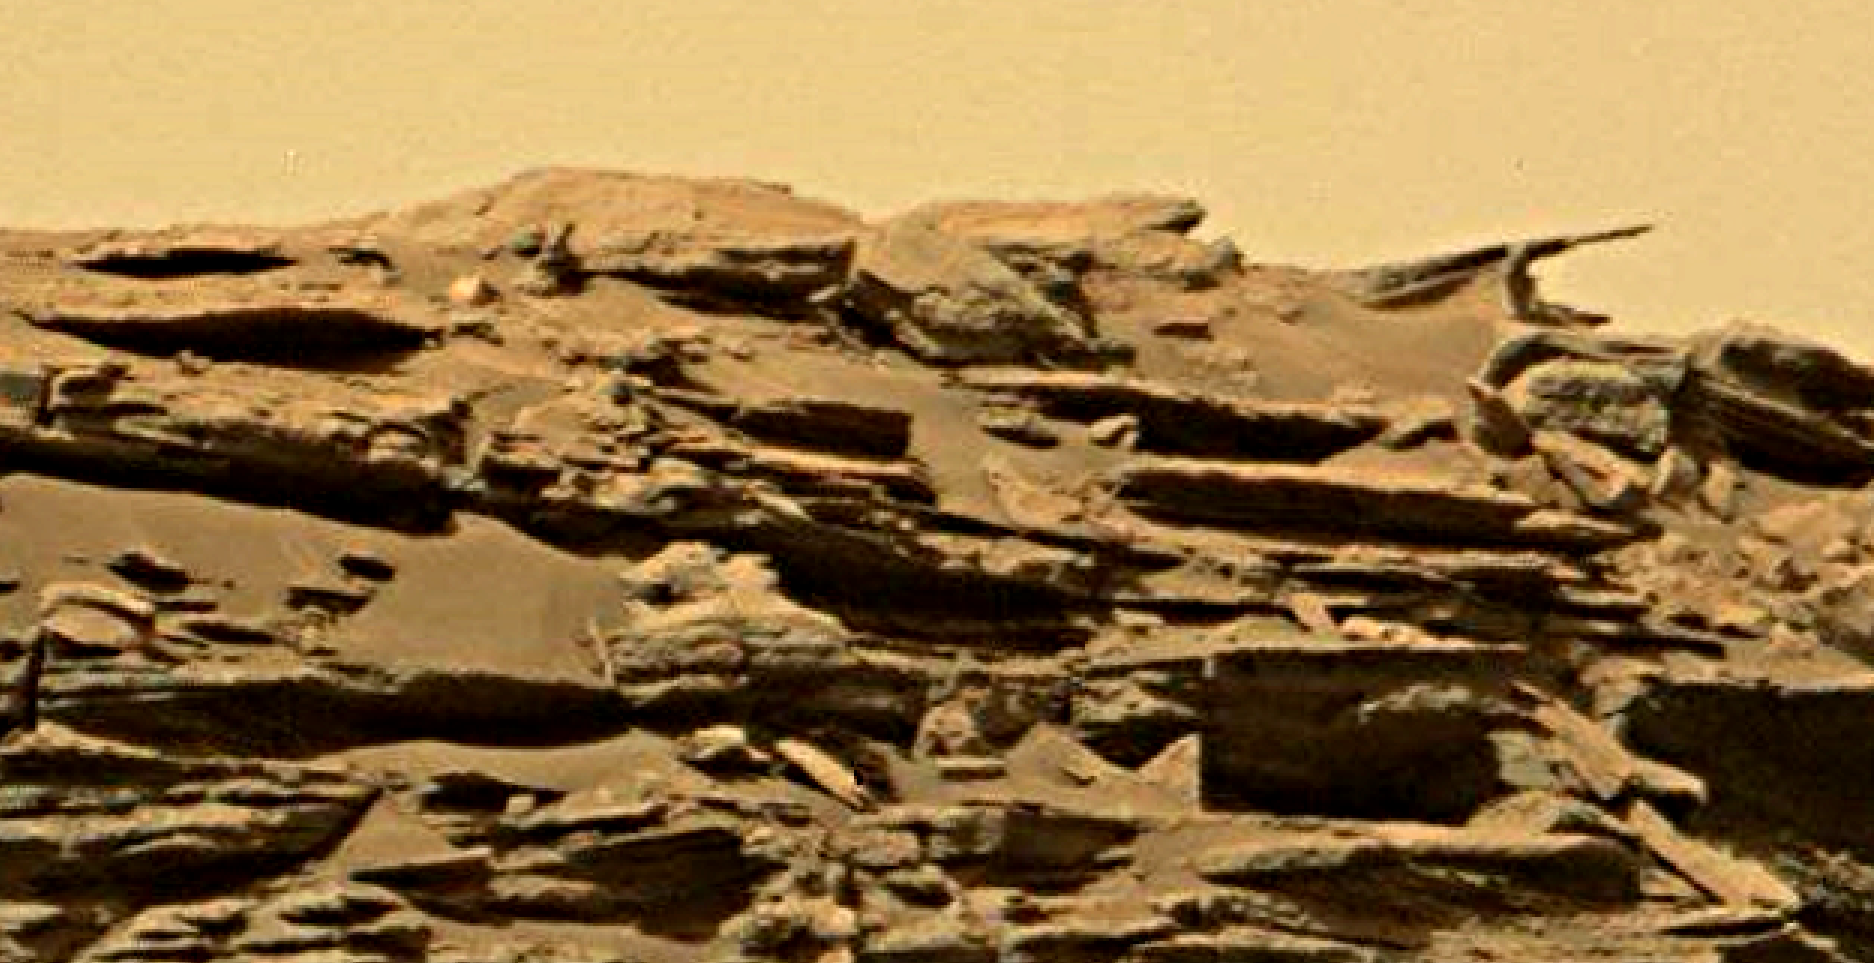 mars-sol-1454-anomaly-artifacts-6-was-life-on-mars